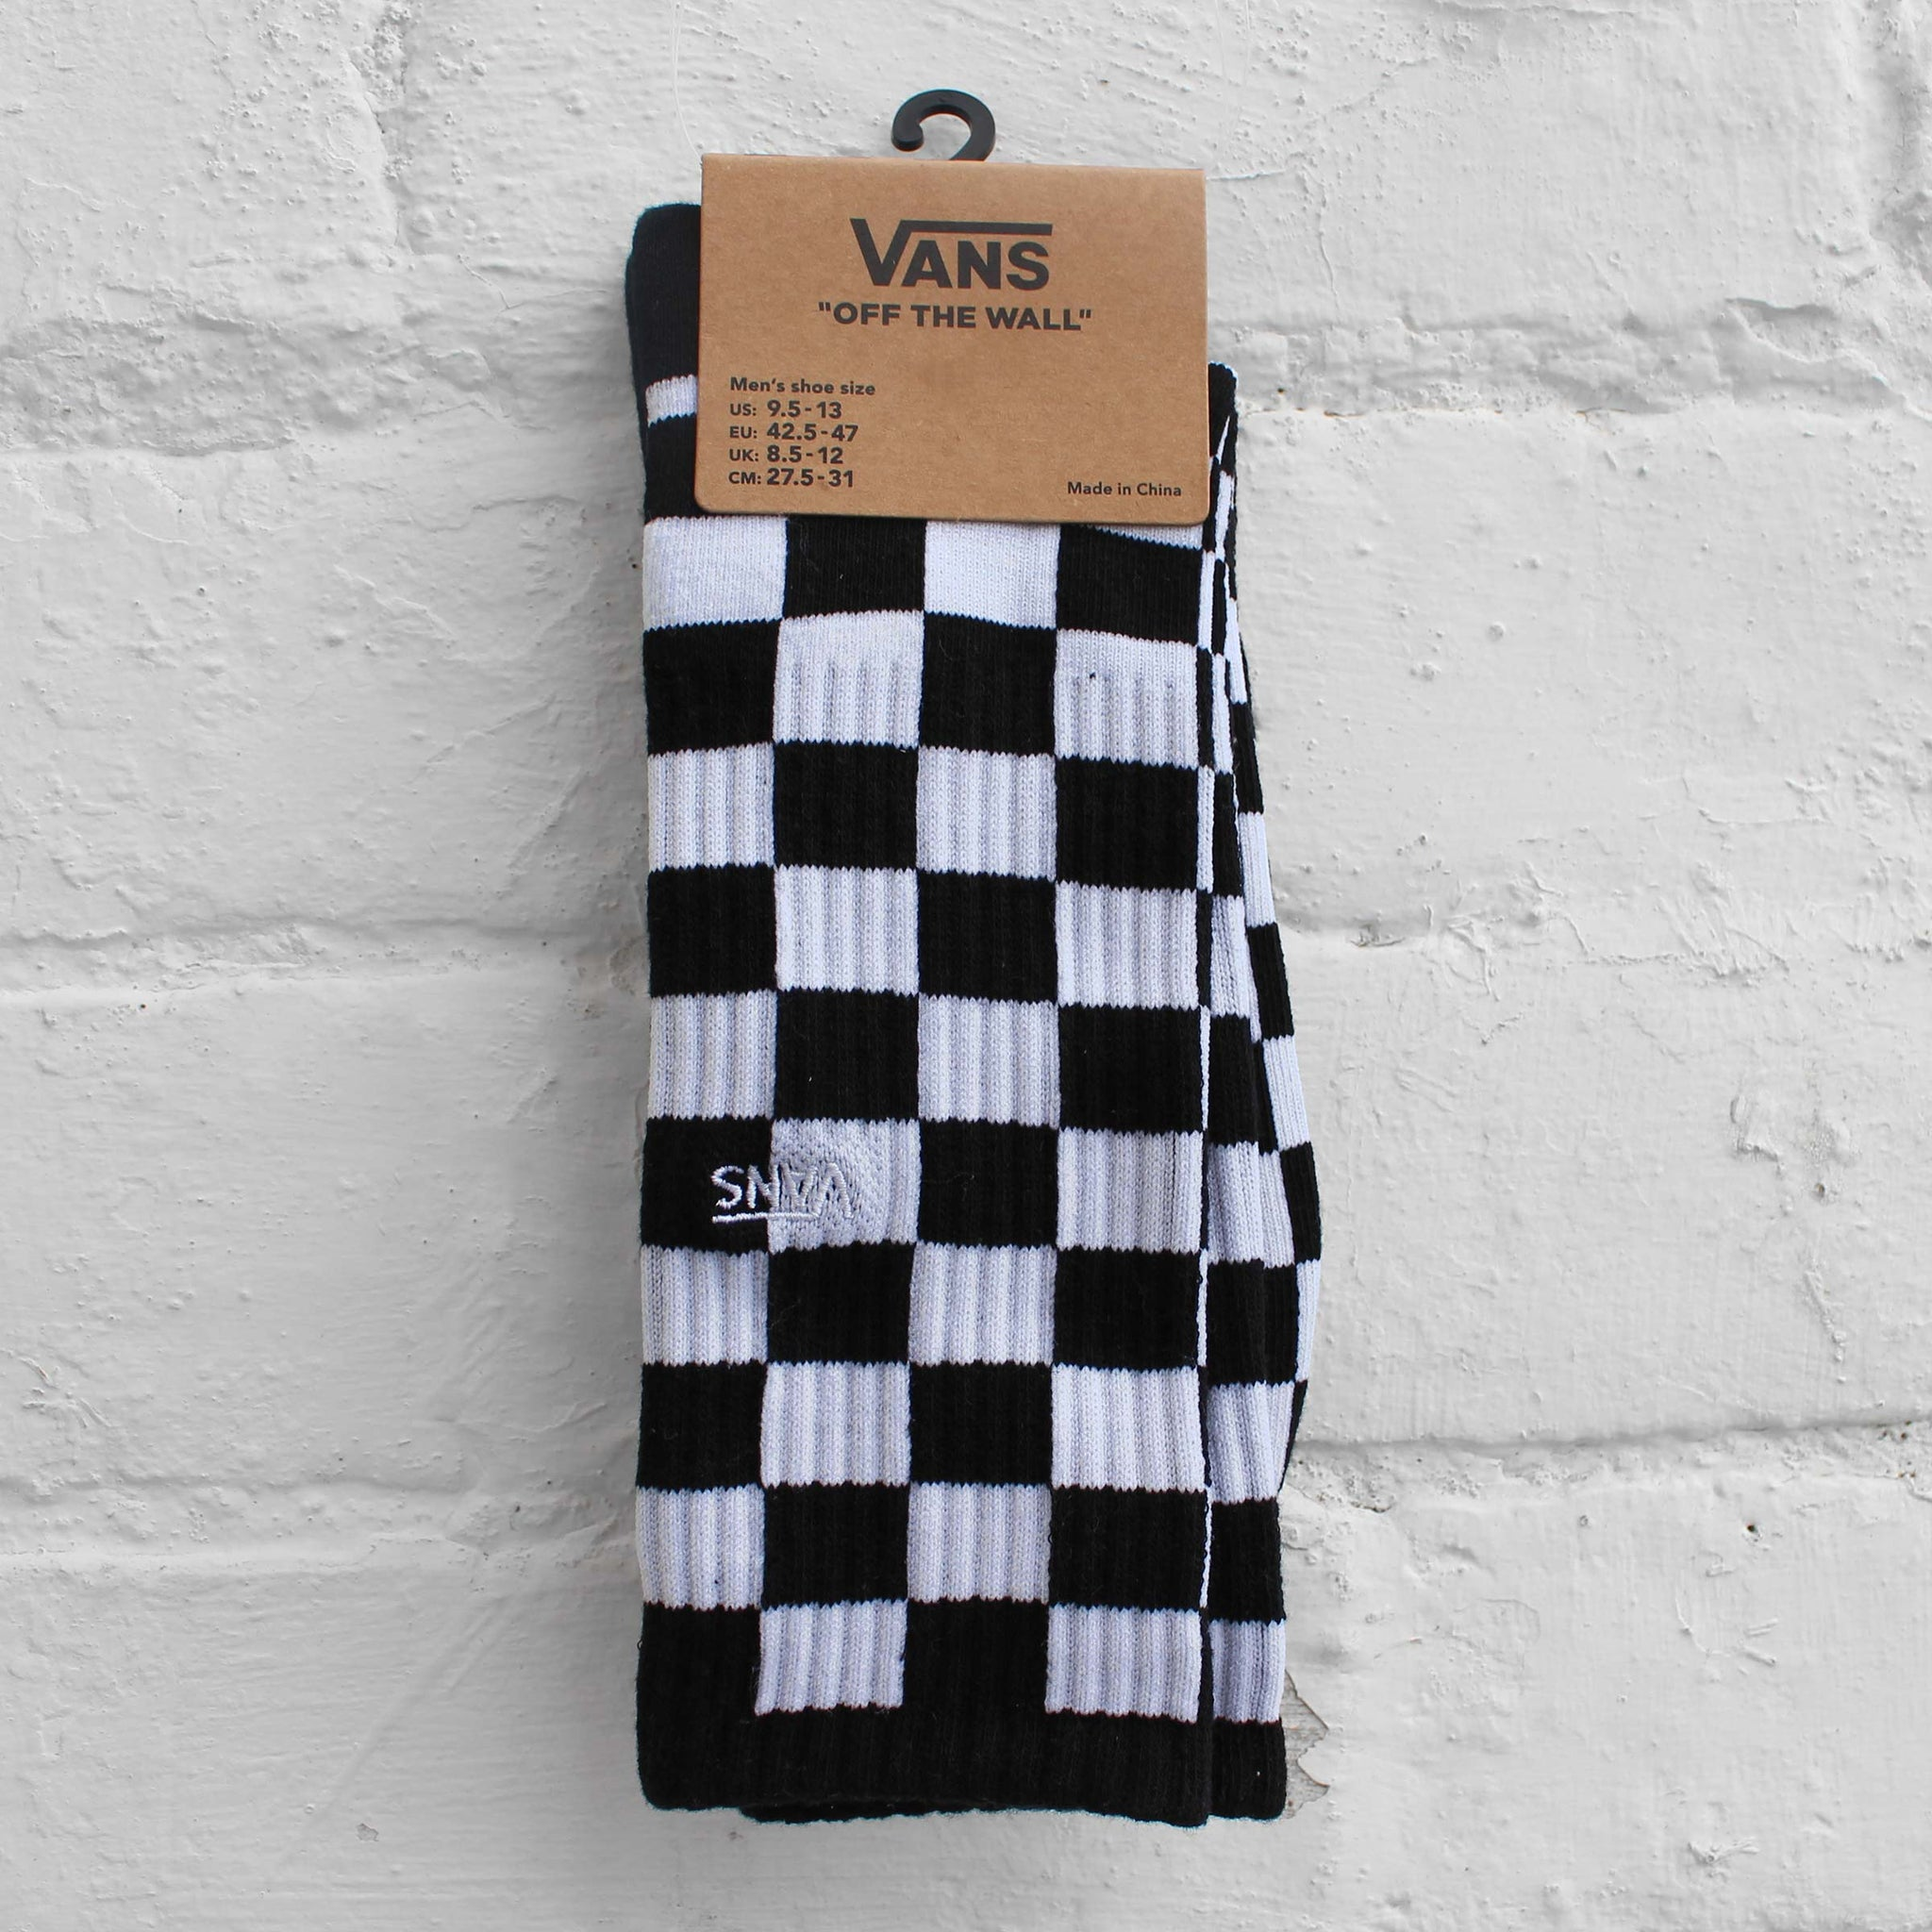 Vans Checkerboard II Crew Socks Black/White